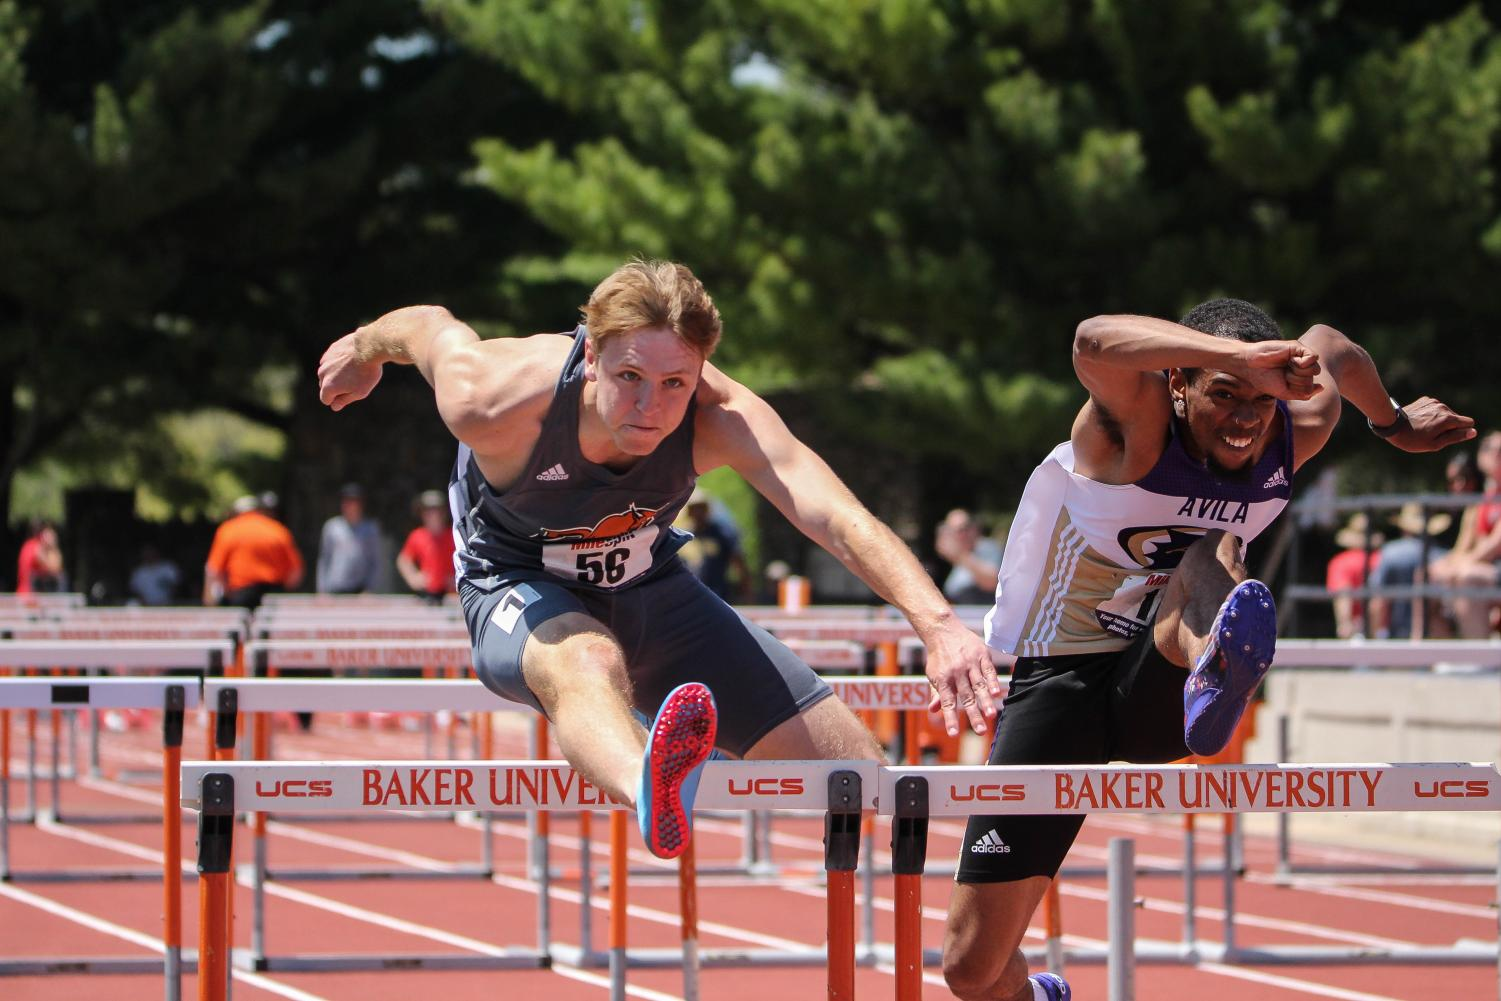 Senior+Michael+Riddle+extends+his+leg+over+a+hurdle+in+the+110+meter+hurdles+at+the+Heart+meet.+Riddle+claimed+seventh+place+in+the+110+meter+hurdles+and+and+fourth+in+the+400+meter+hurdles+later+the+same+day.